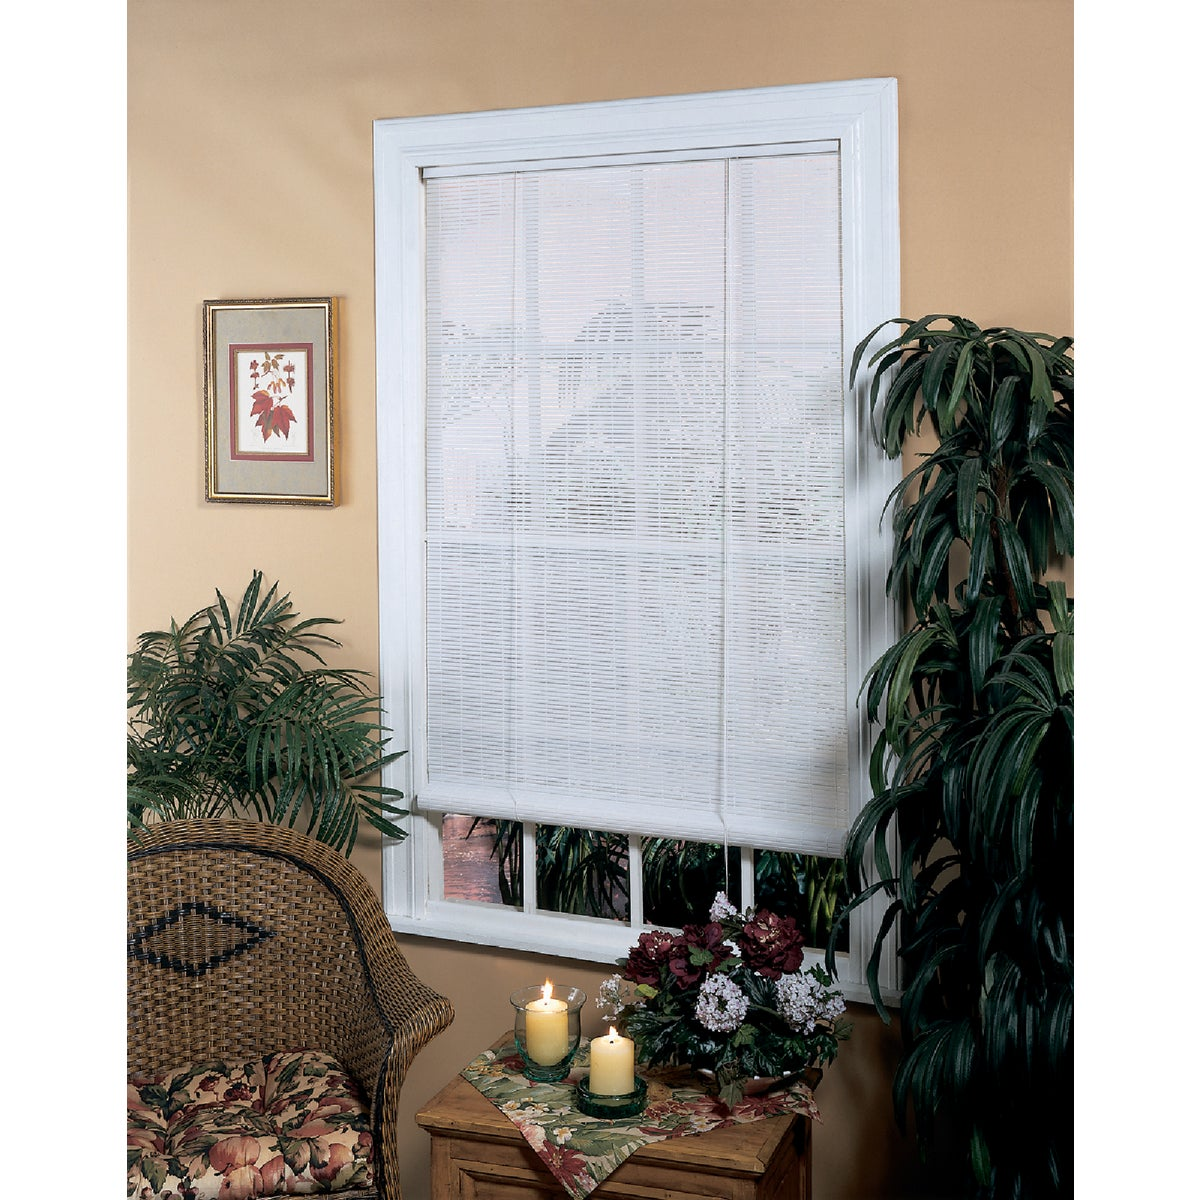 72X72 WHT ROLL-UP BLIND - 0320166 by Lewis Hyman